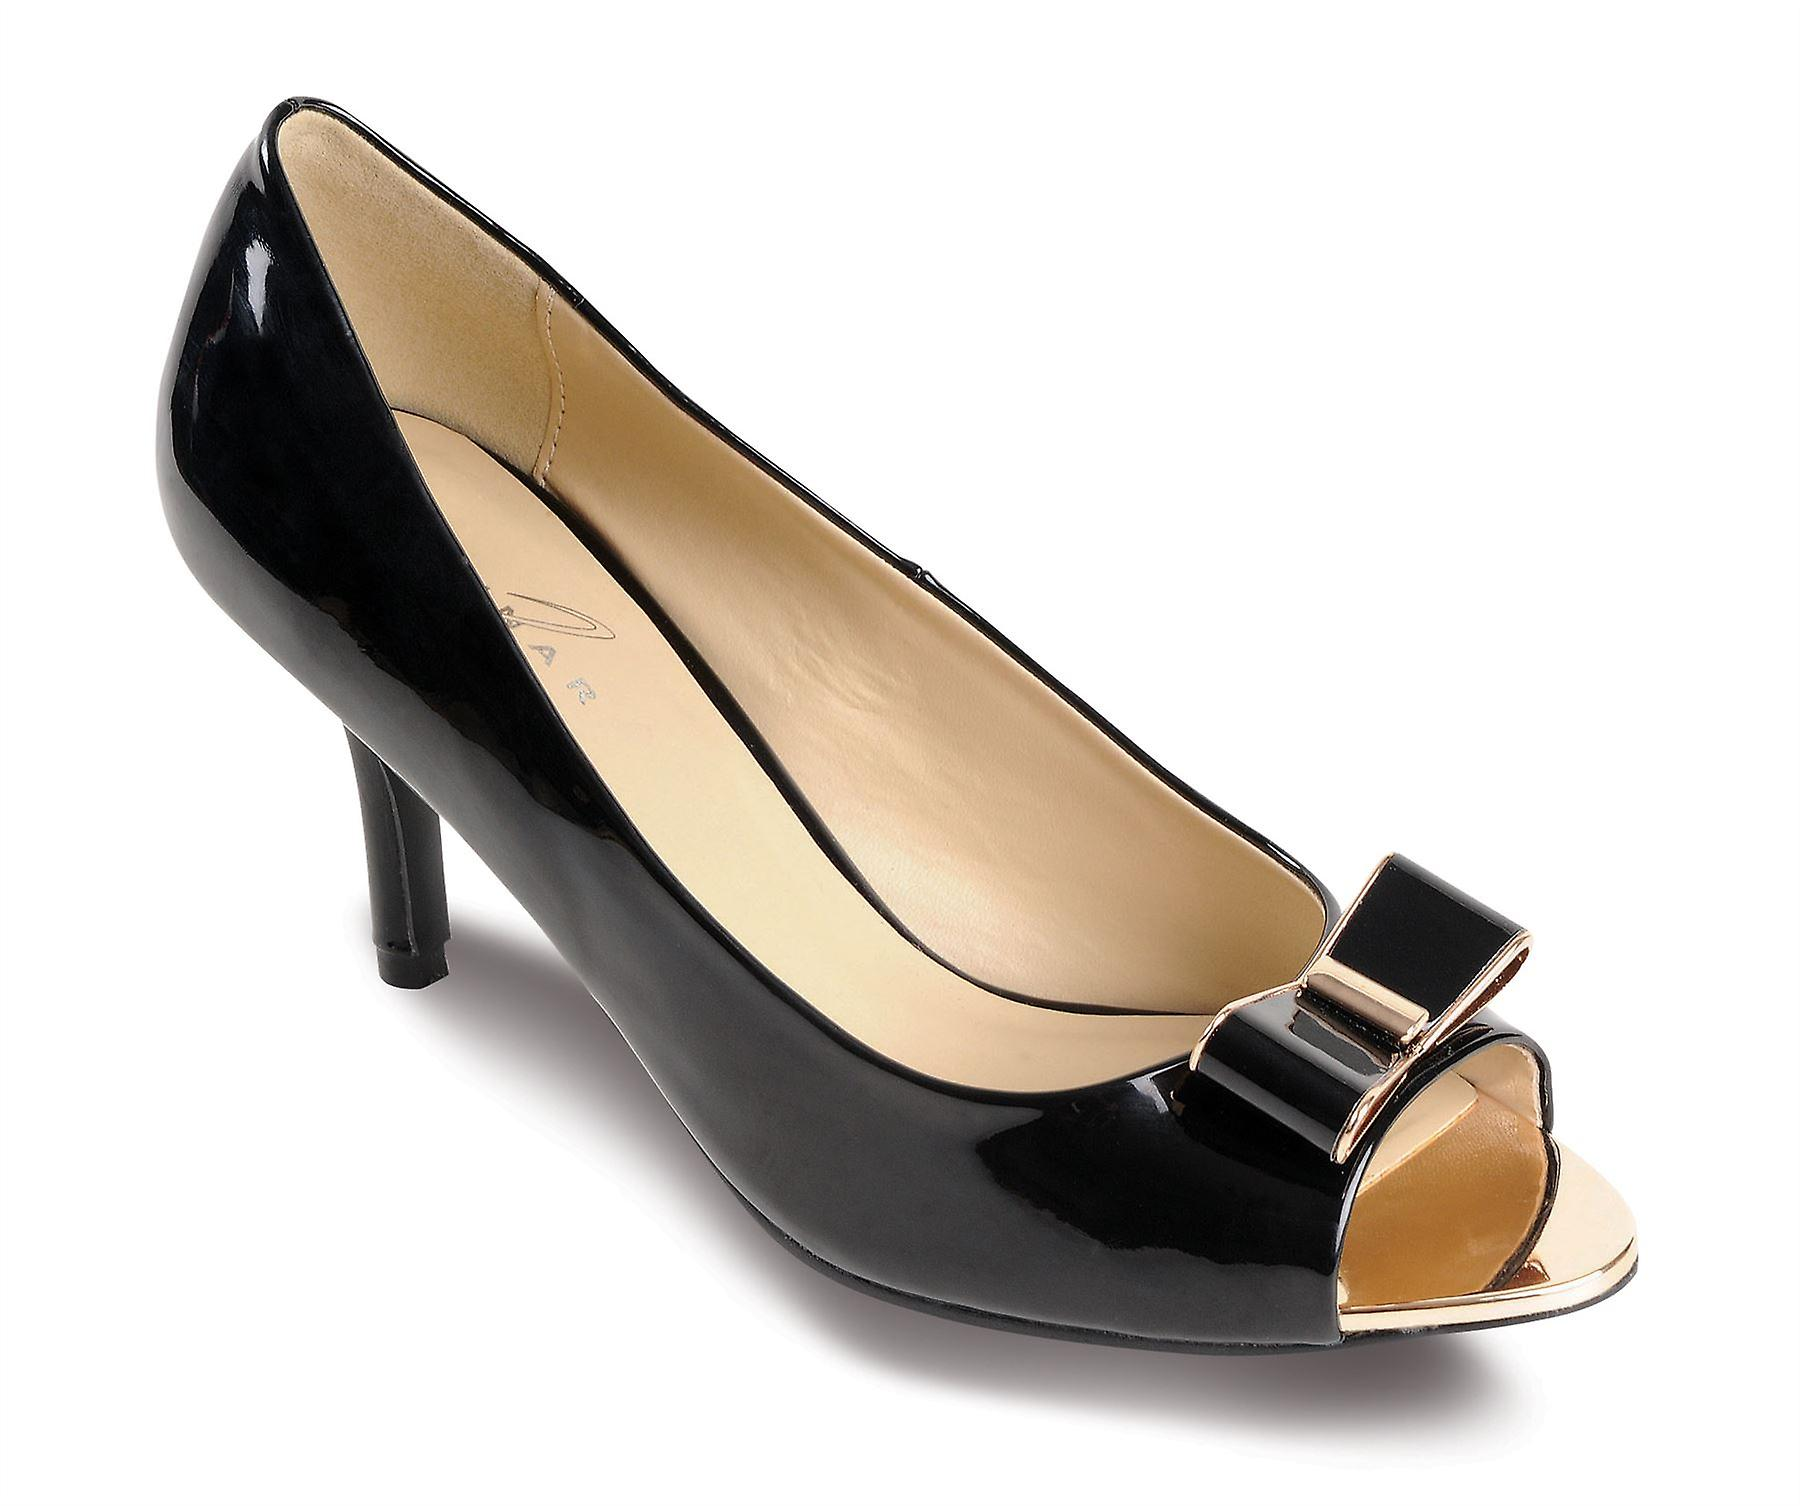 Ladies Kitten Heel Patent Bow Gold Contrast Women's Peep Toe Smart Shoes